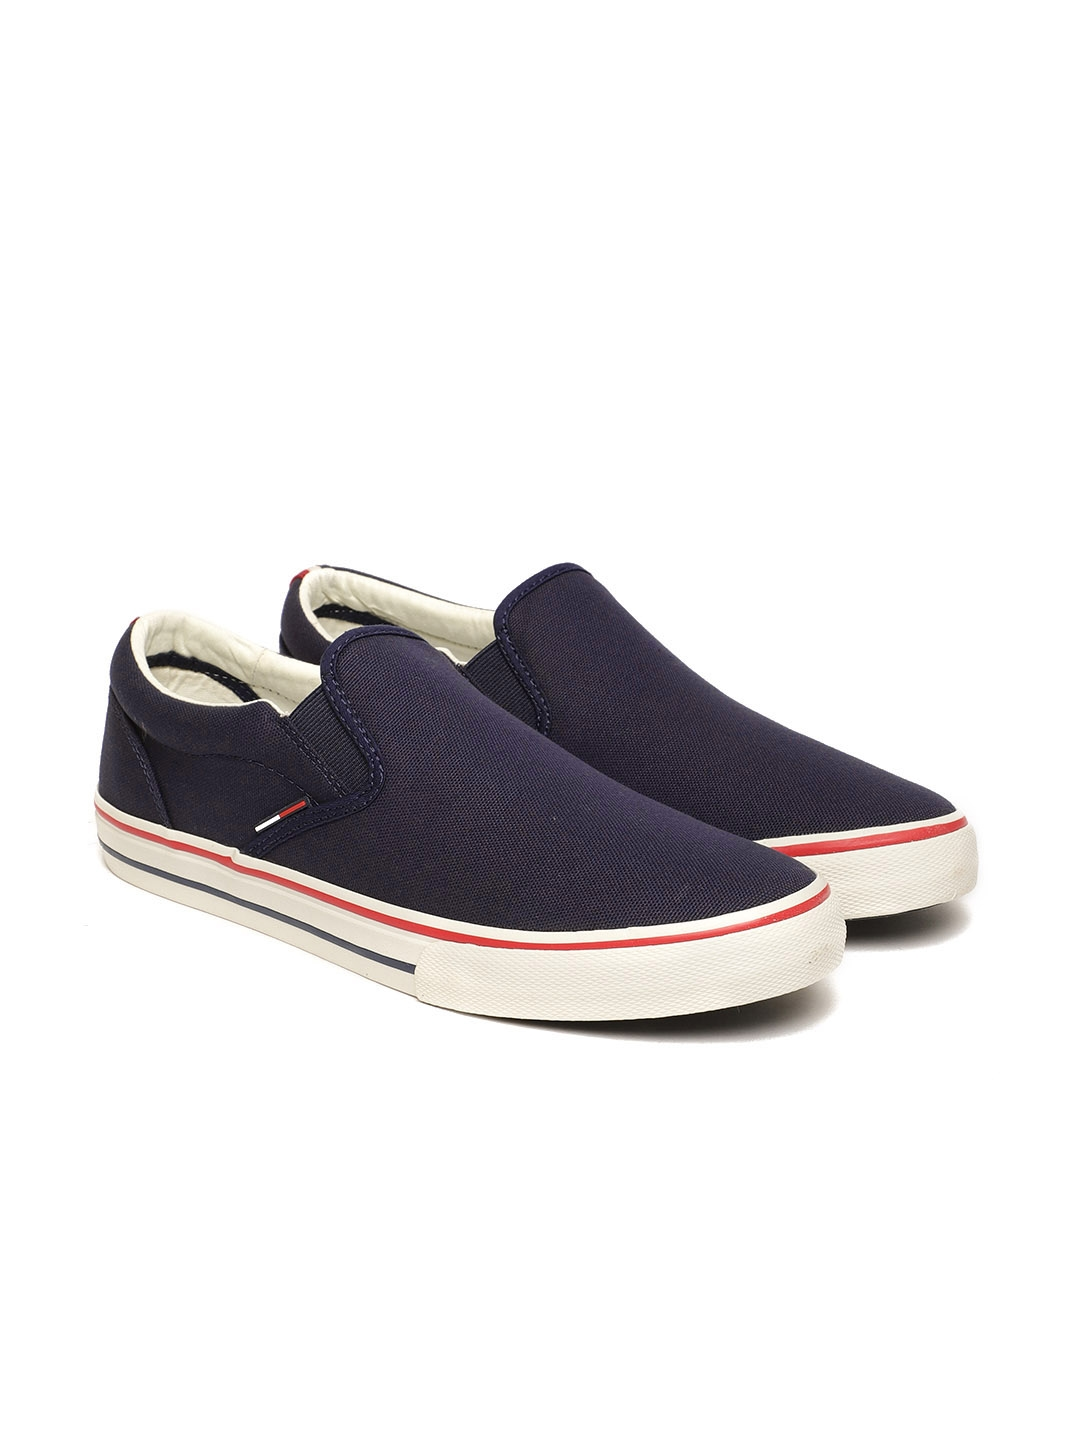 9be1ef260 Buy Tommy Hilfiger Men Blue Sneakers - Casual Shoes for Men 5361713 ...